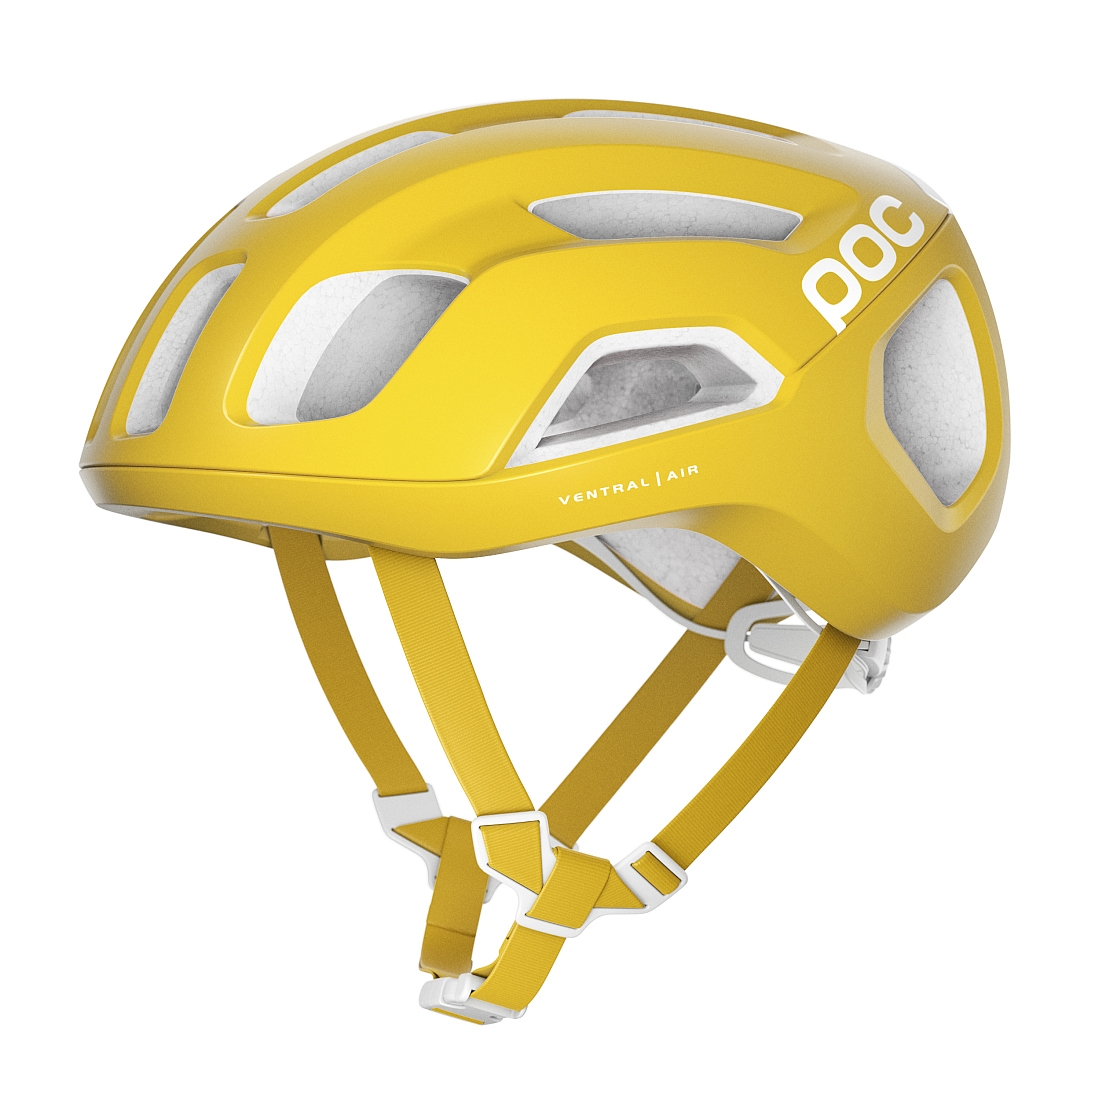 POC Kask rowerowy szosowy VENTRAL Air Spin Yellow